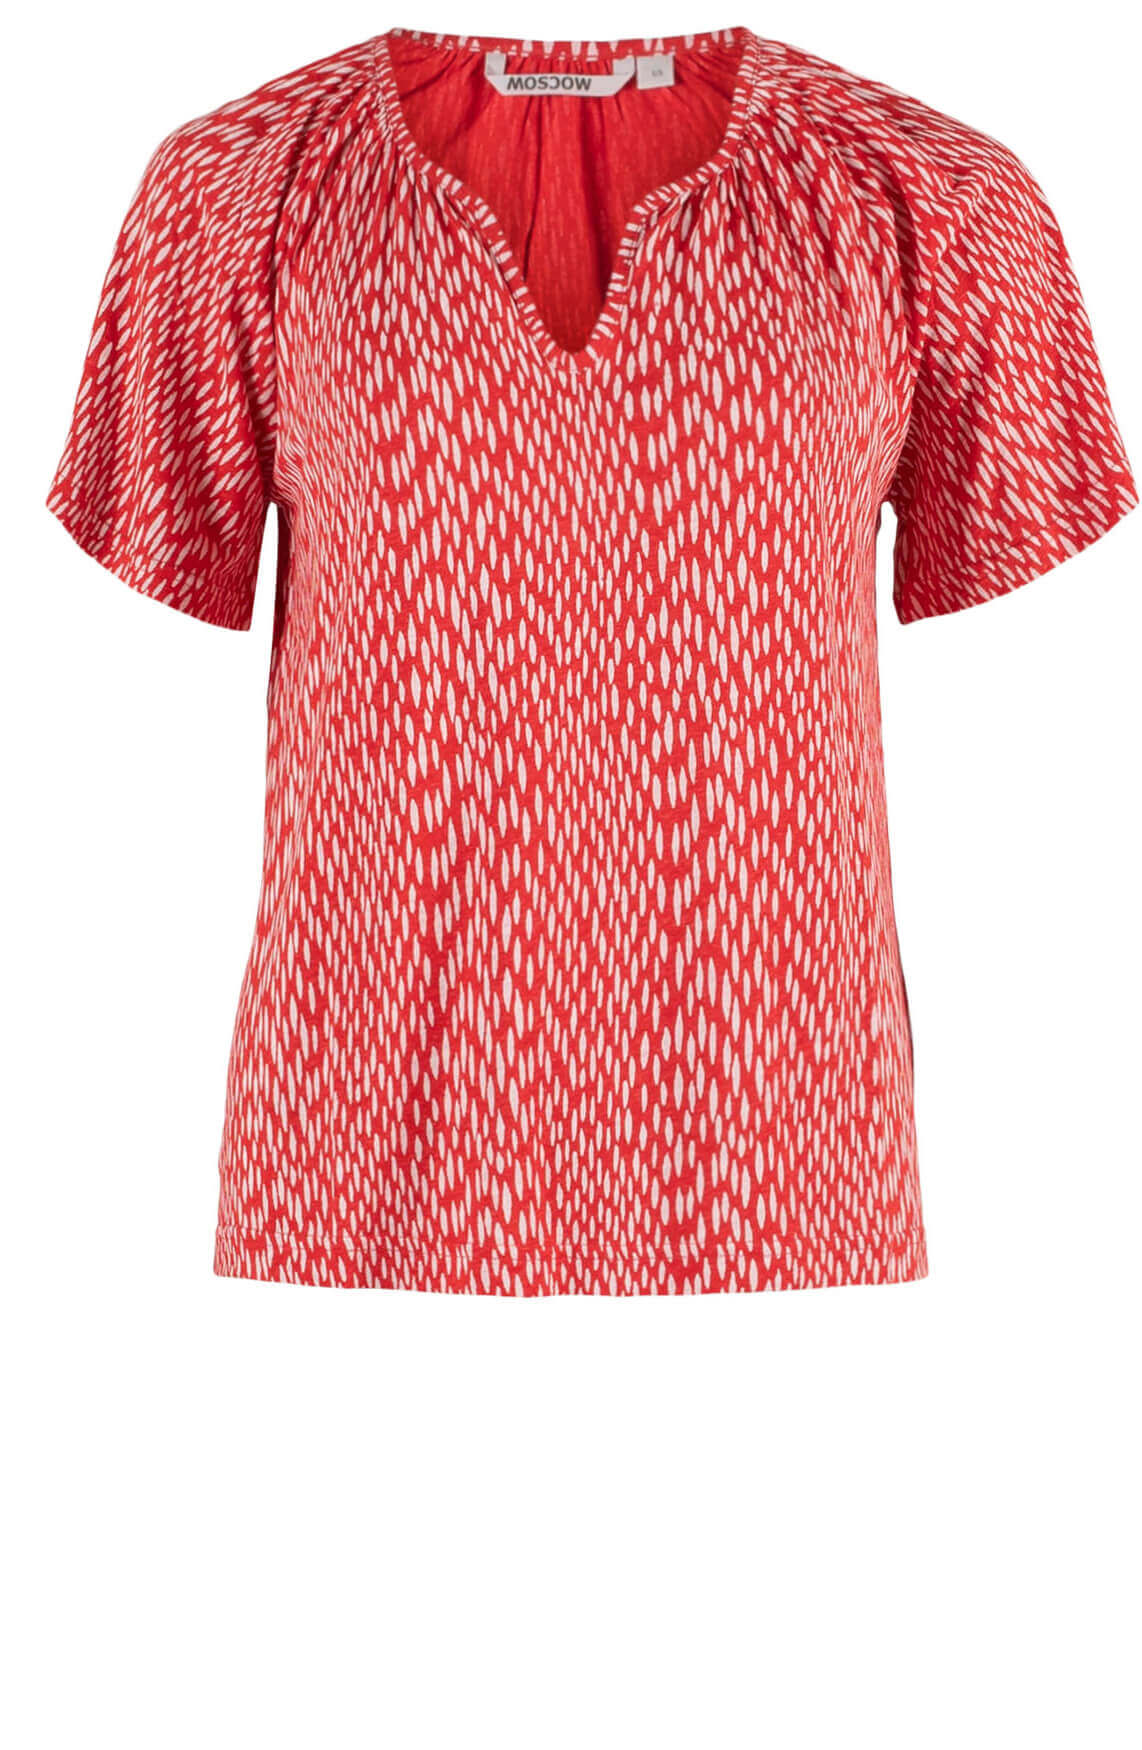 Moscow Dames Shirt met print Rood